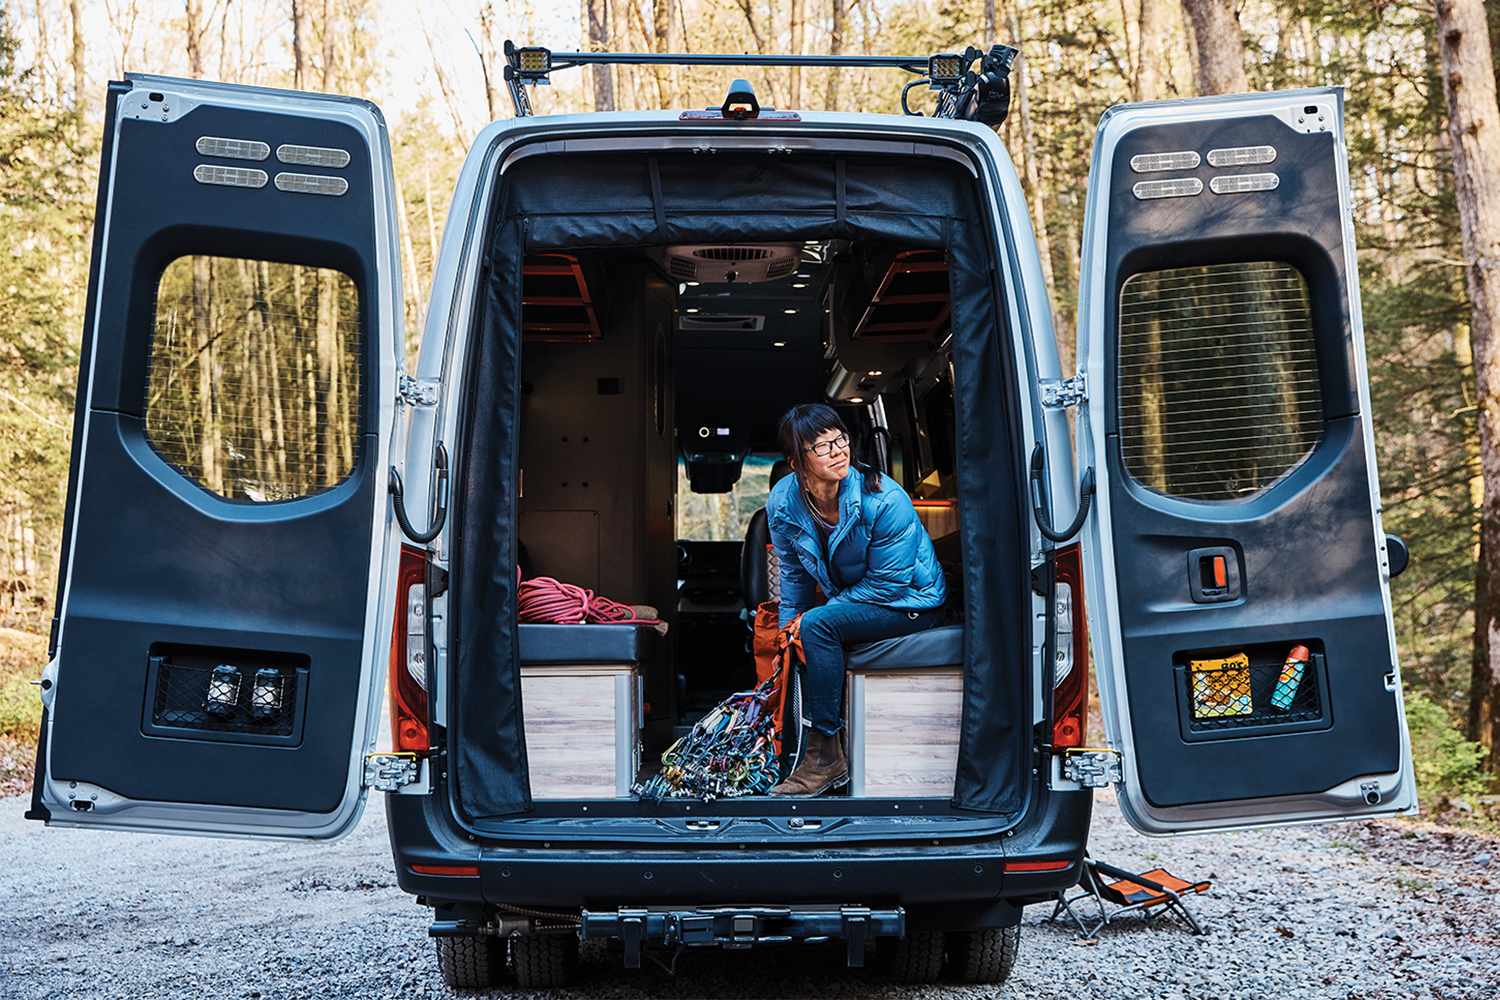 A person sitting in the back of the Airstream Interstate 24X adventure van